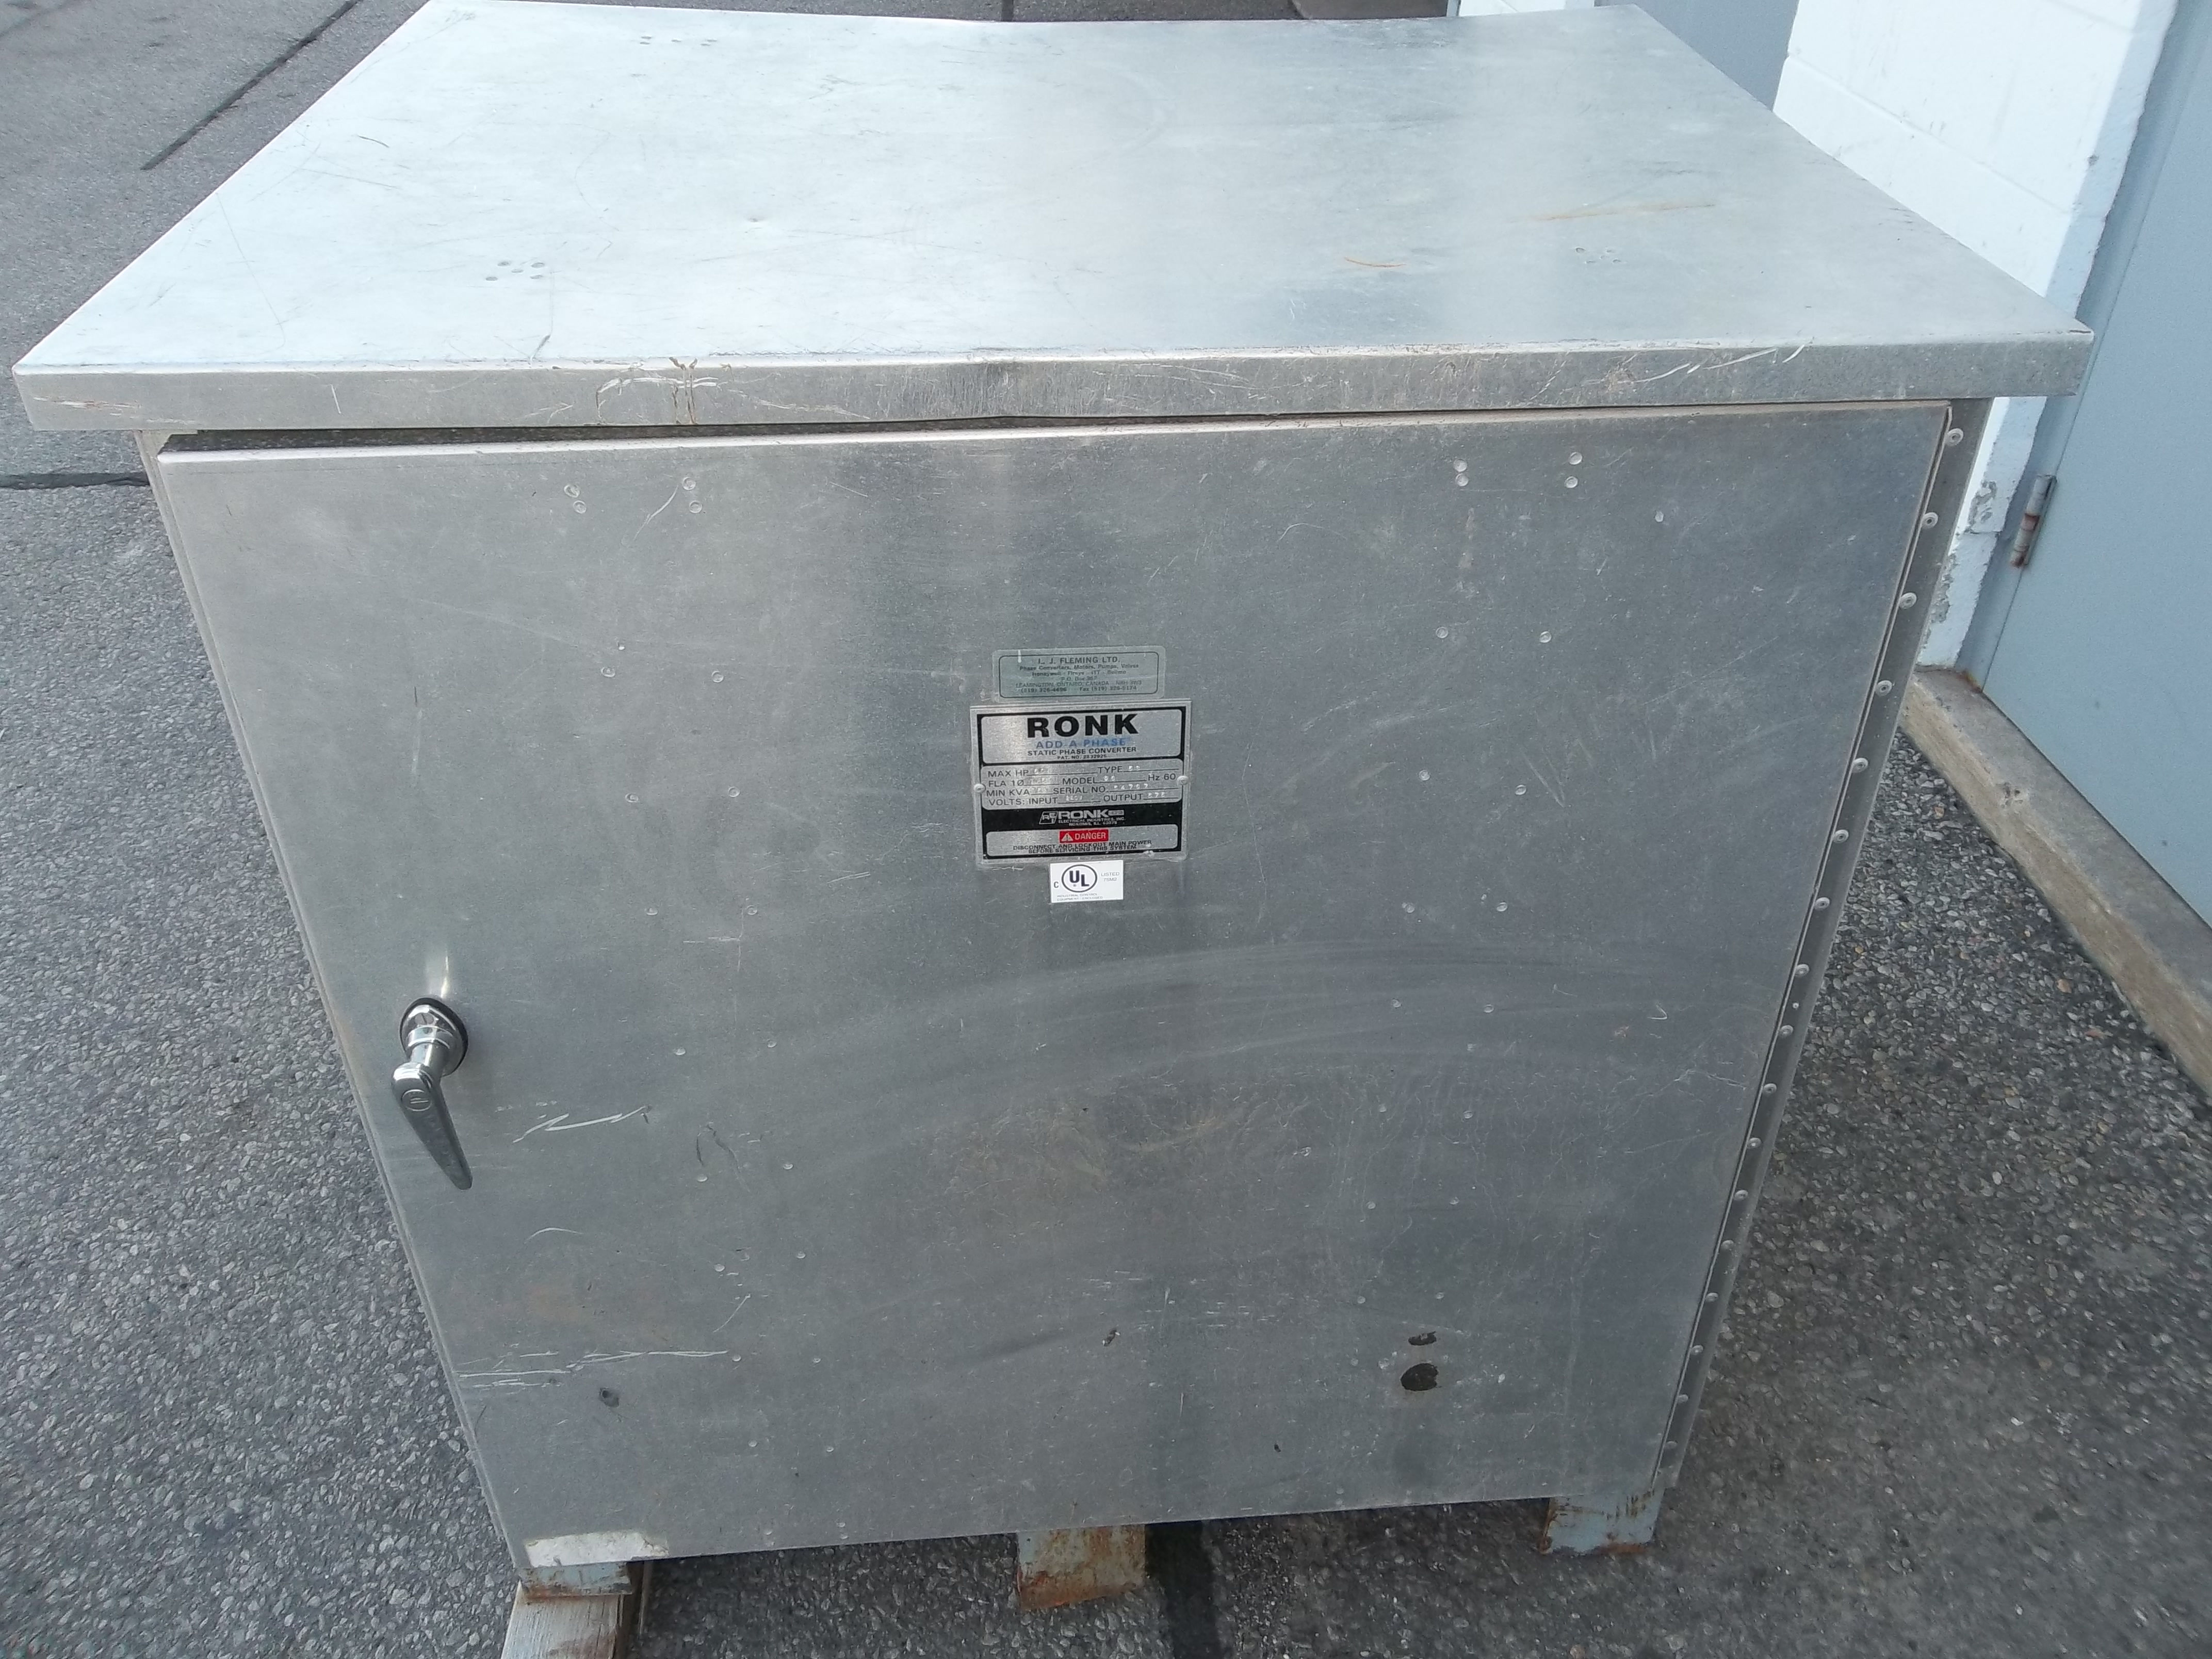 used specials new specials refurbished specials ronk static phase converter 230 volts 1 phase in 575 volt 3 phase out 93 amp